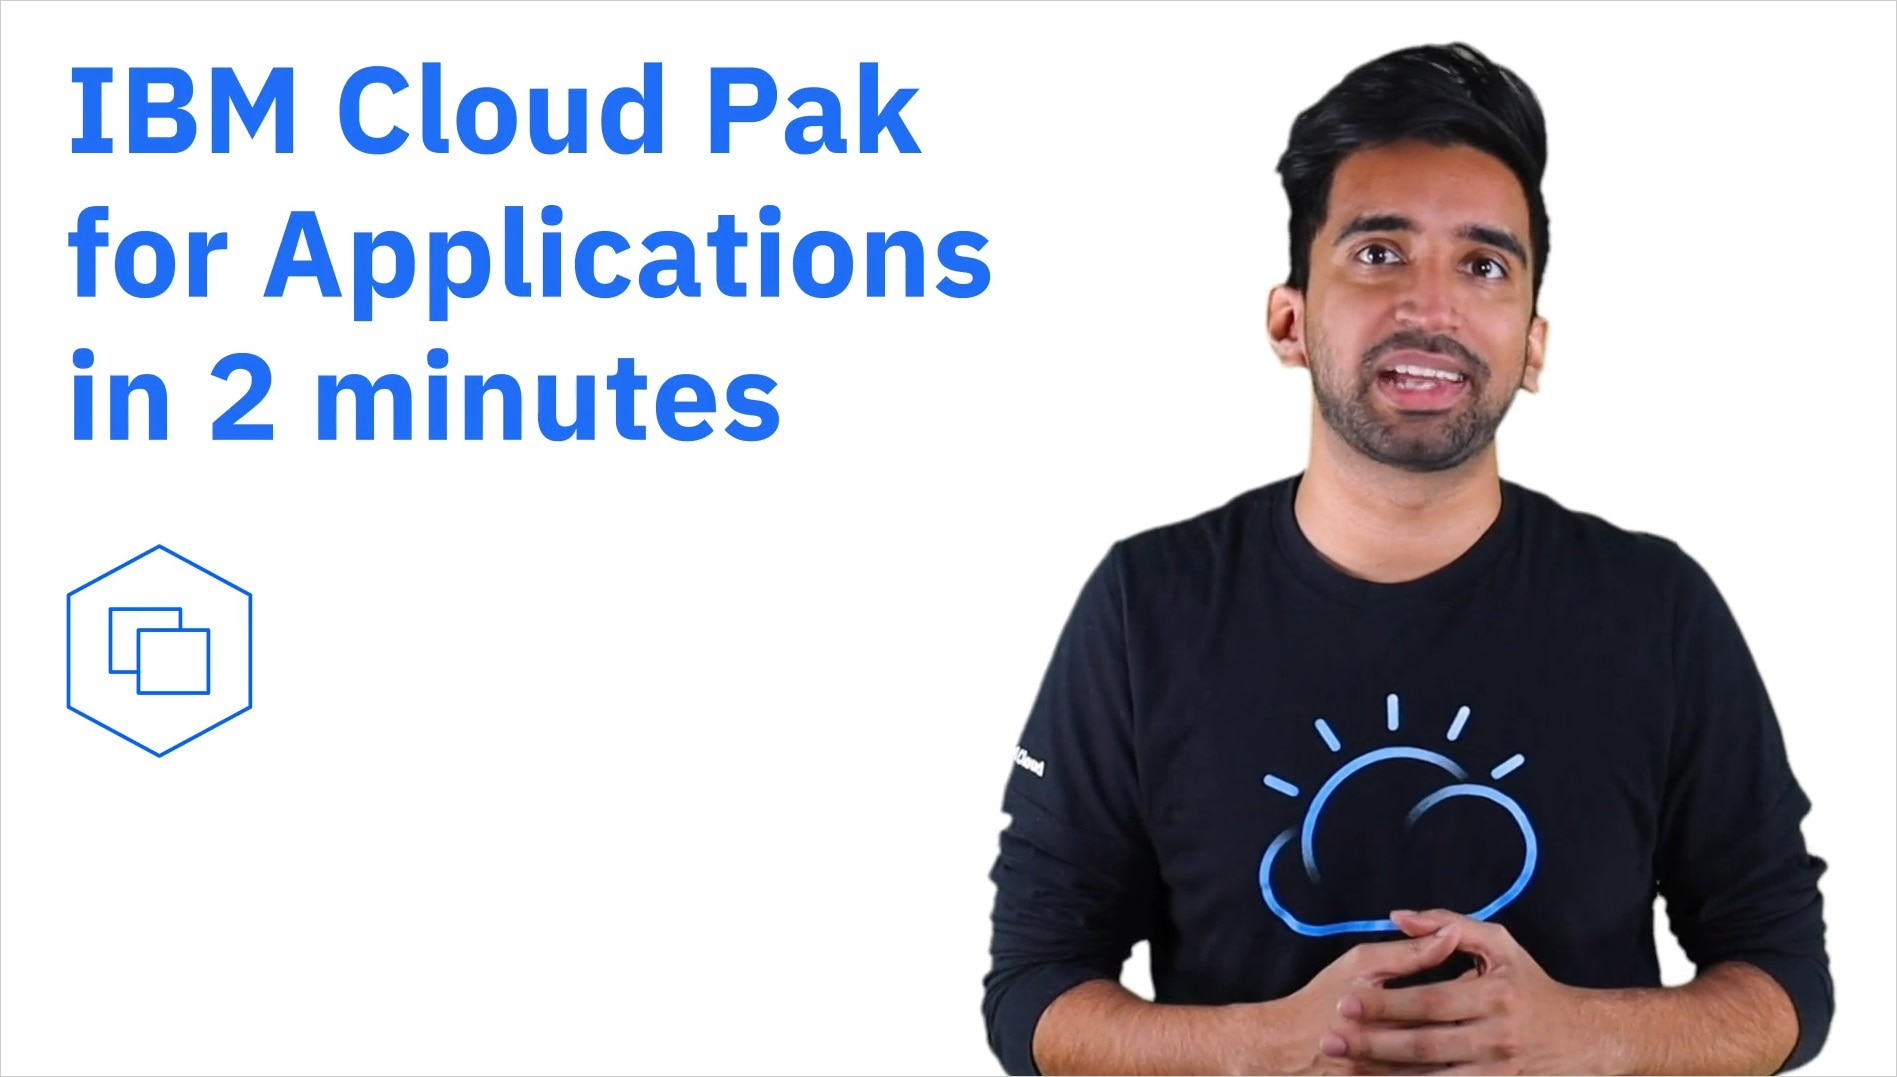 IBM Cloud Pak for Applications in 2 minutes (01:47)